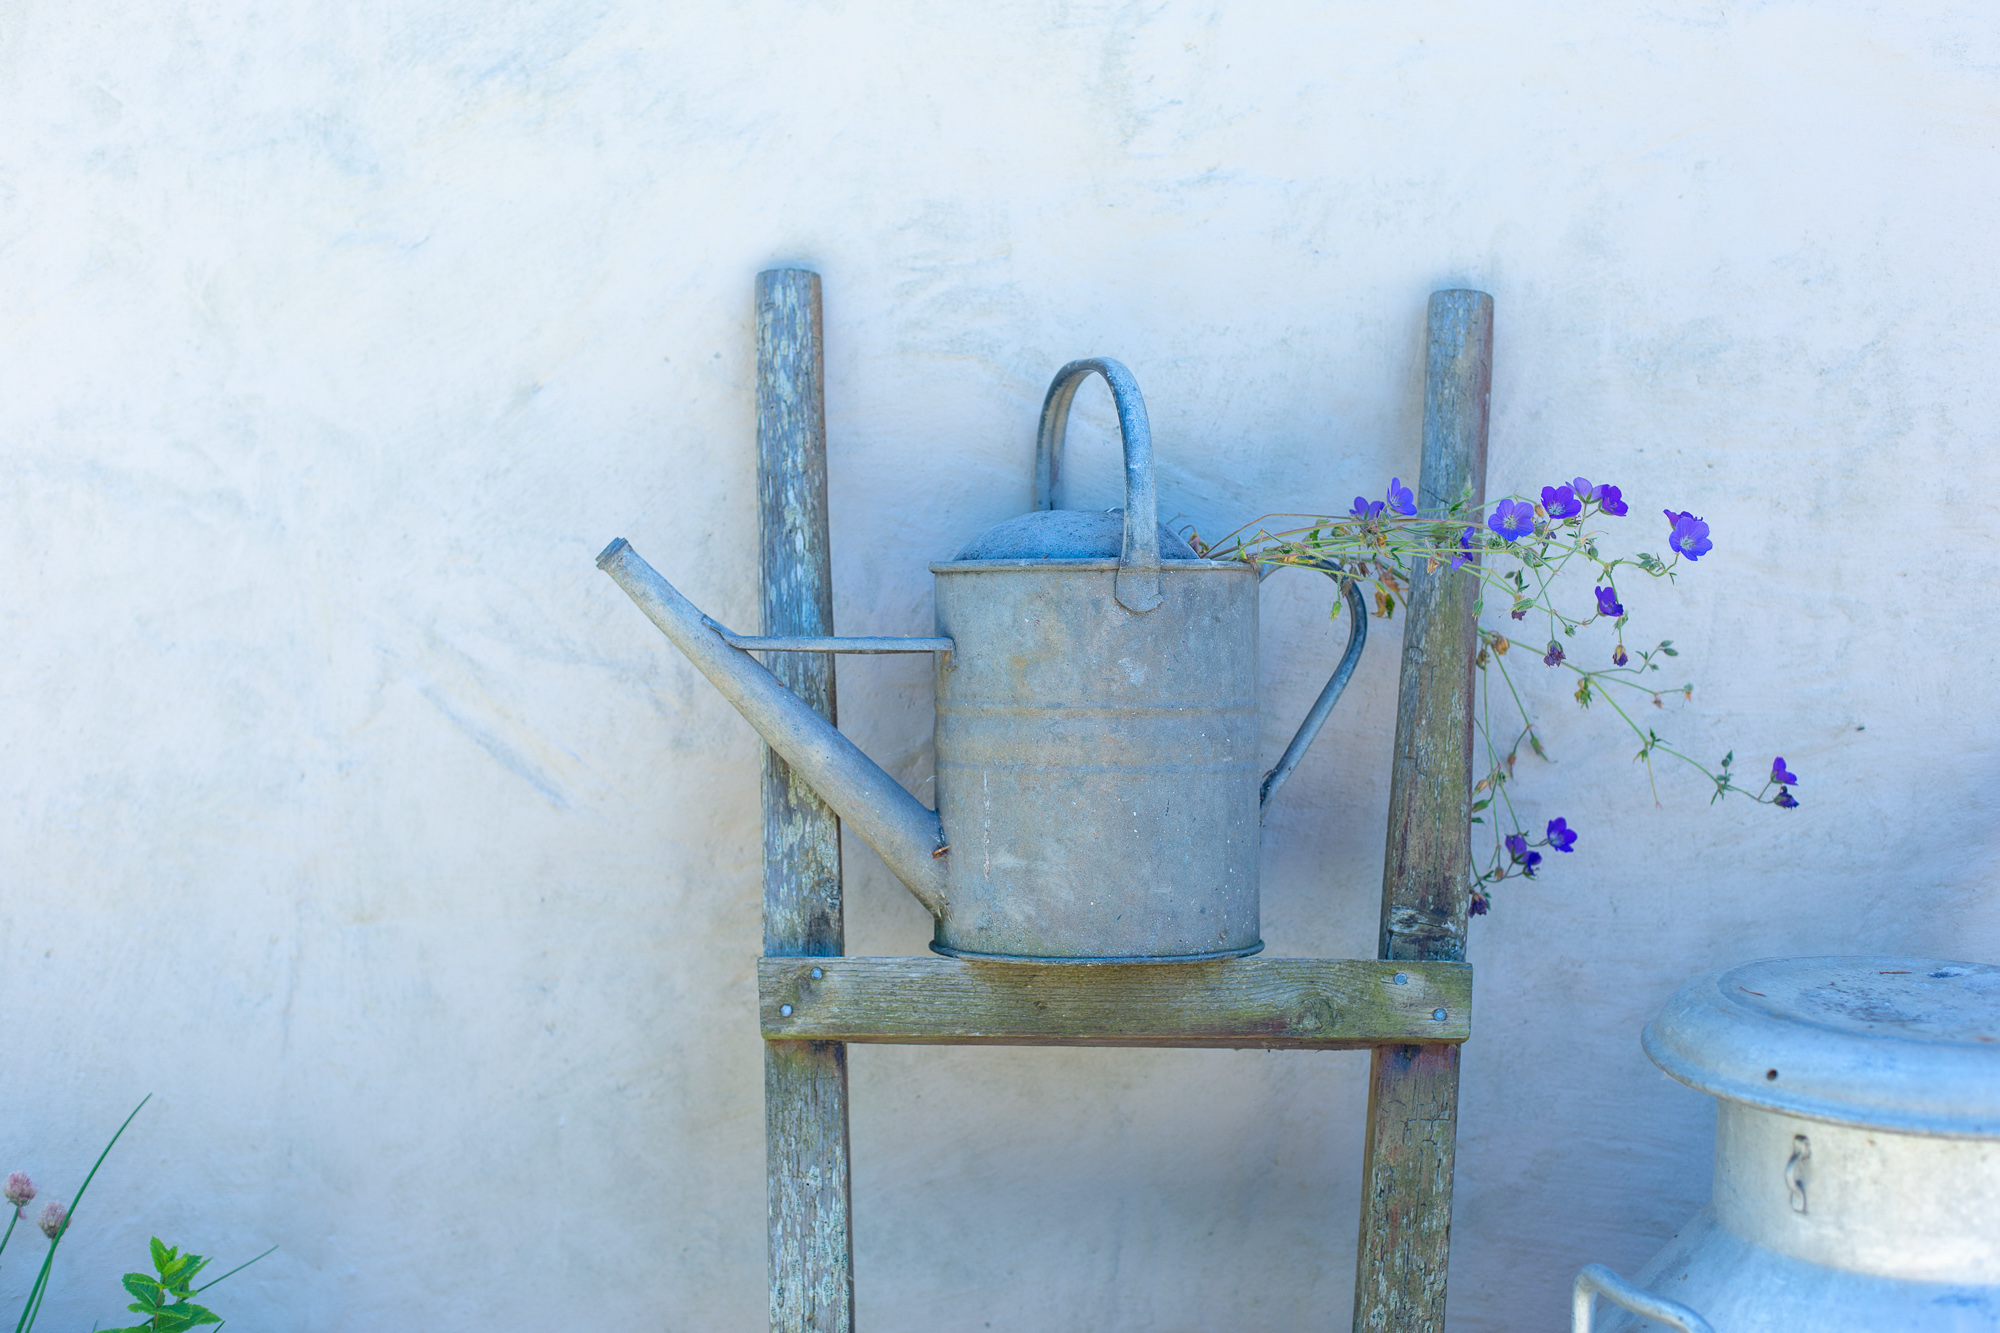 Yr Hafan holiday cottages shabby chic